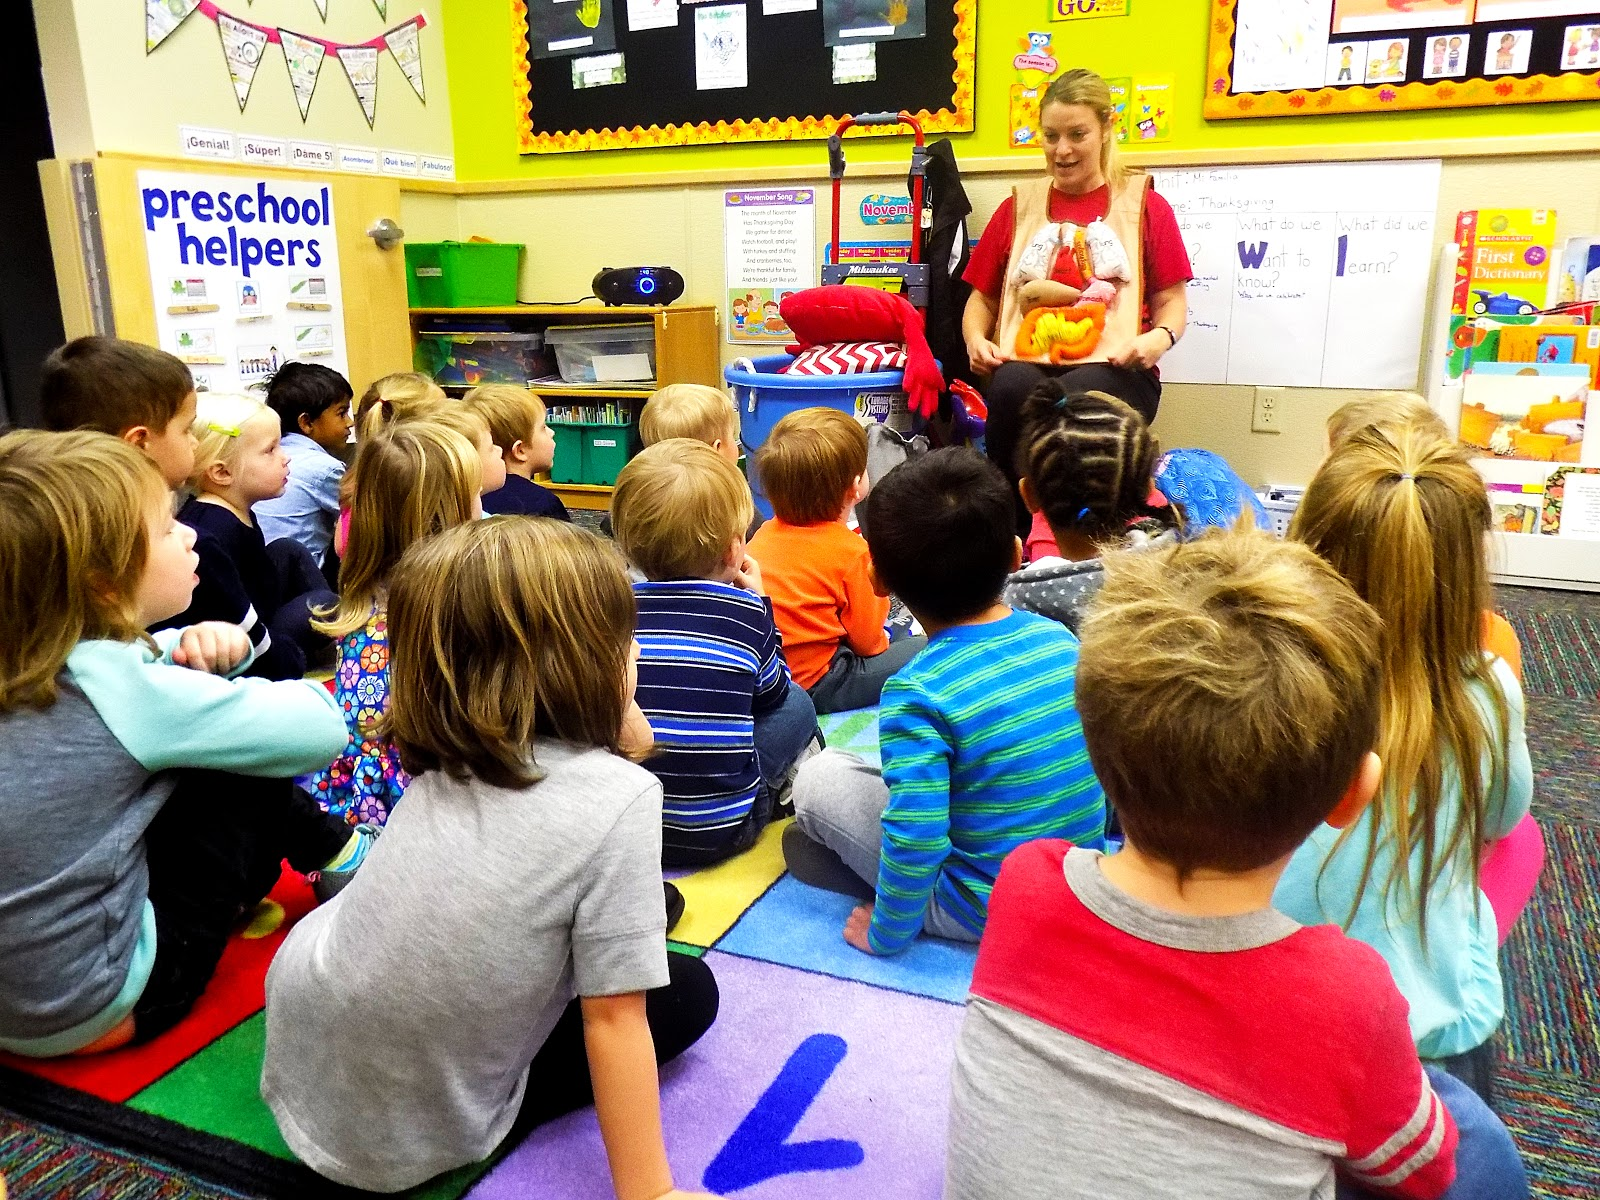 A class filled with preschool kids